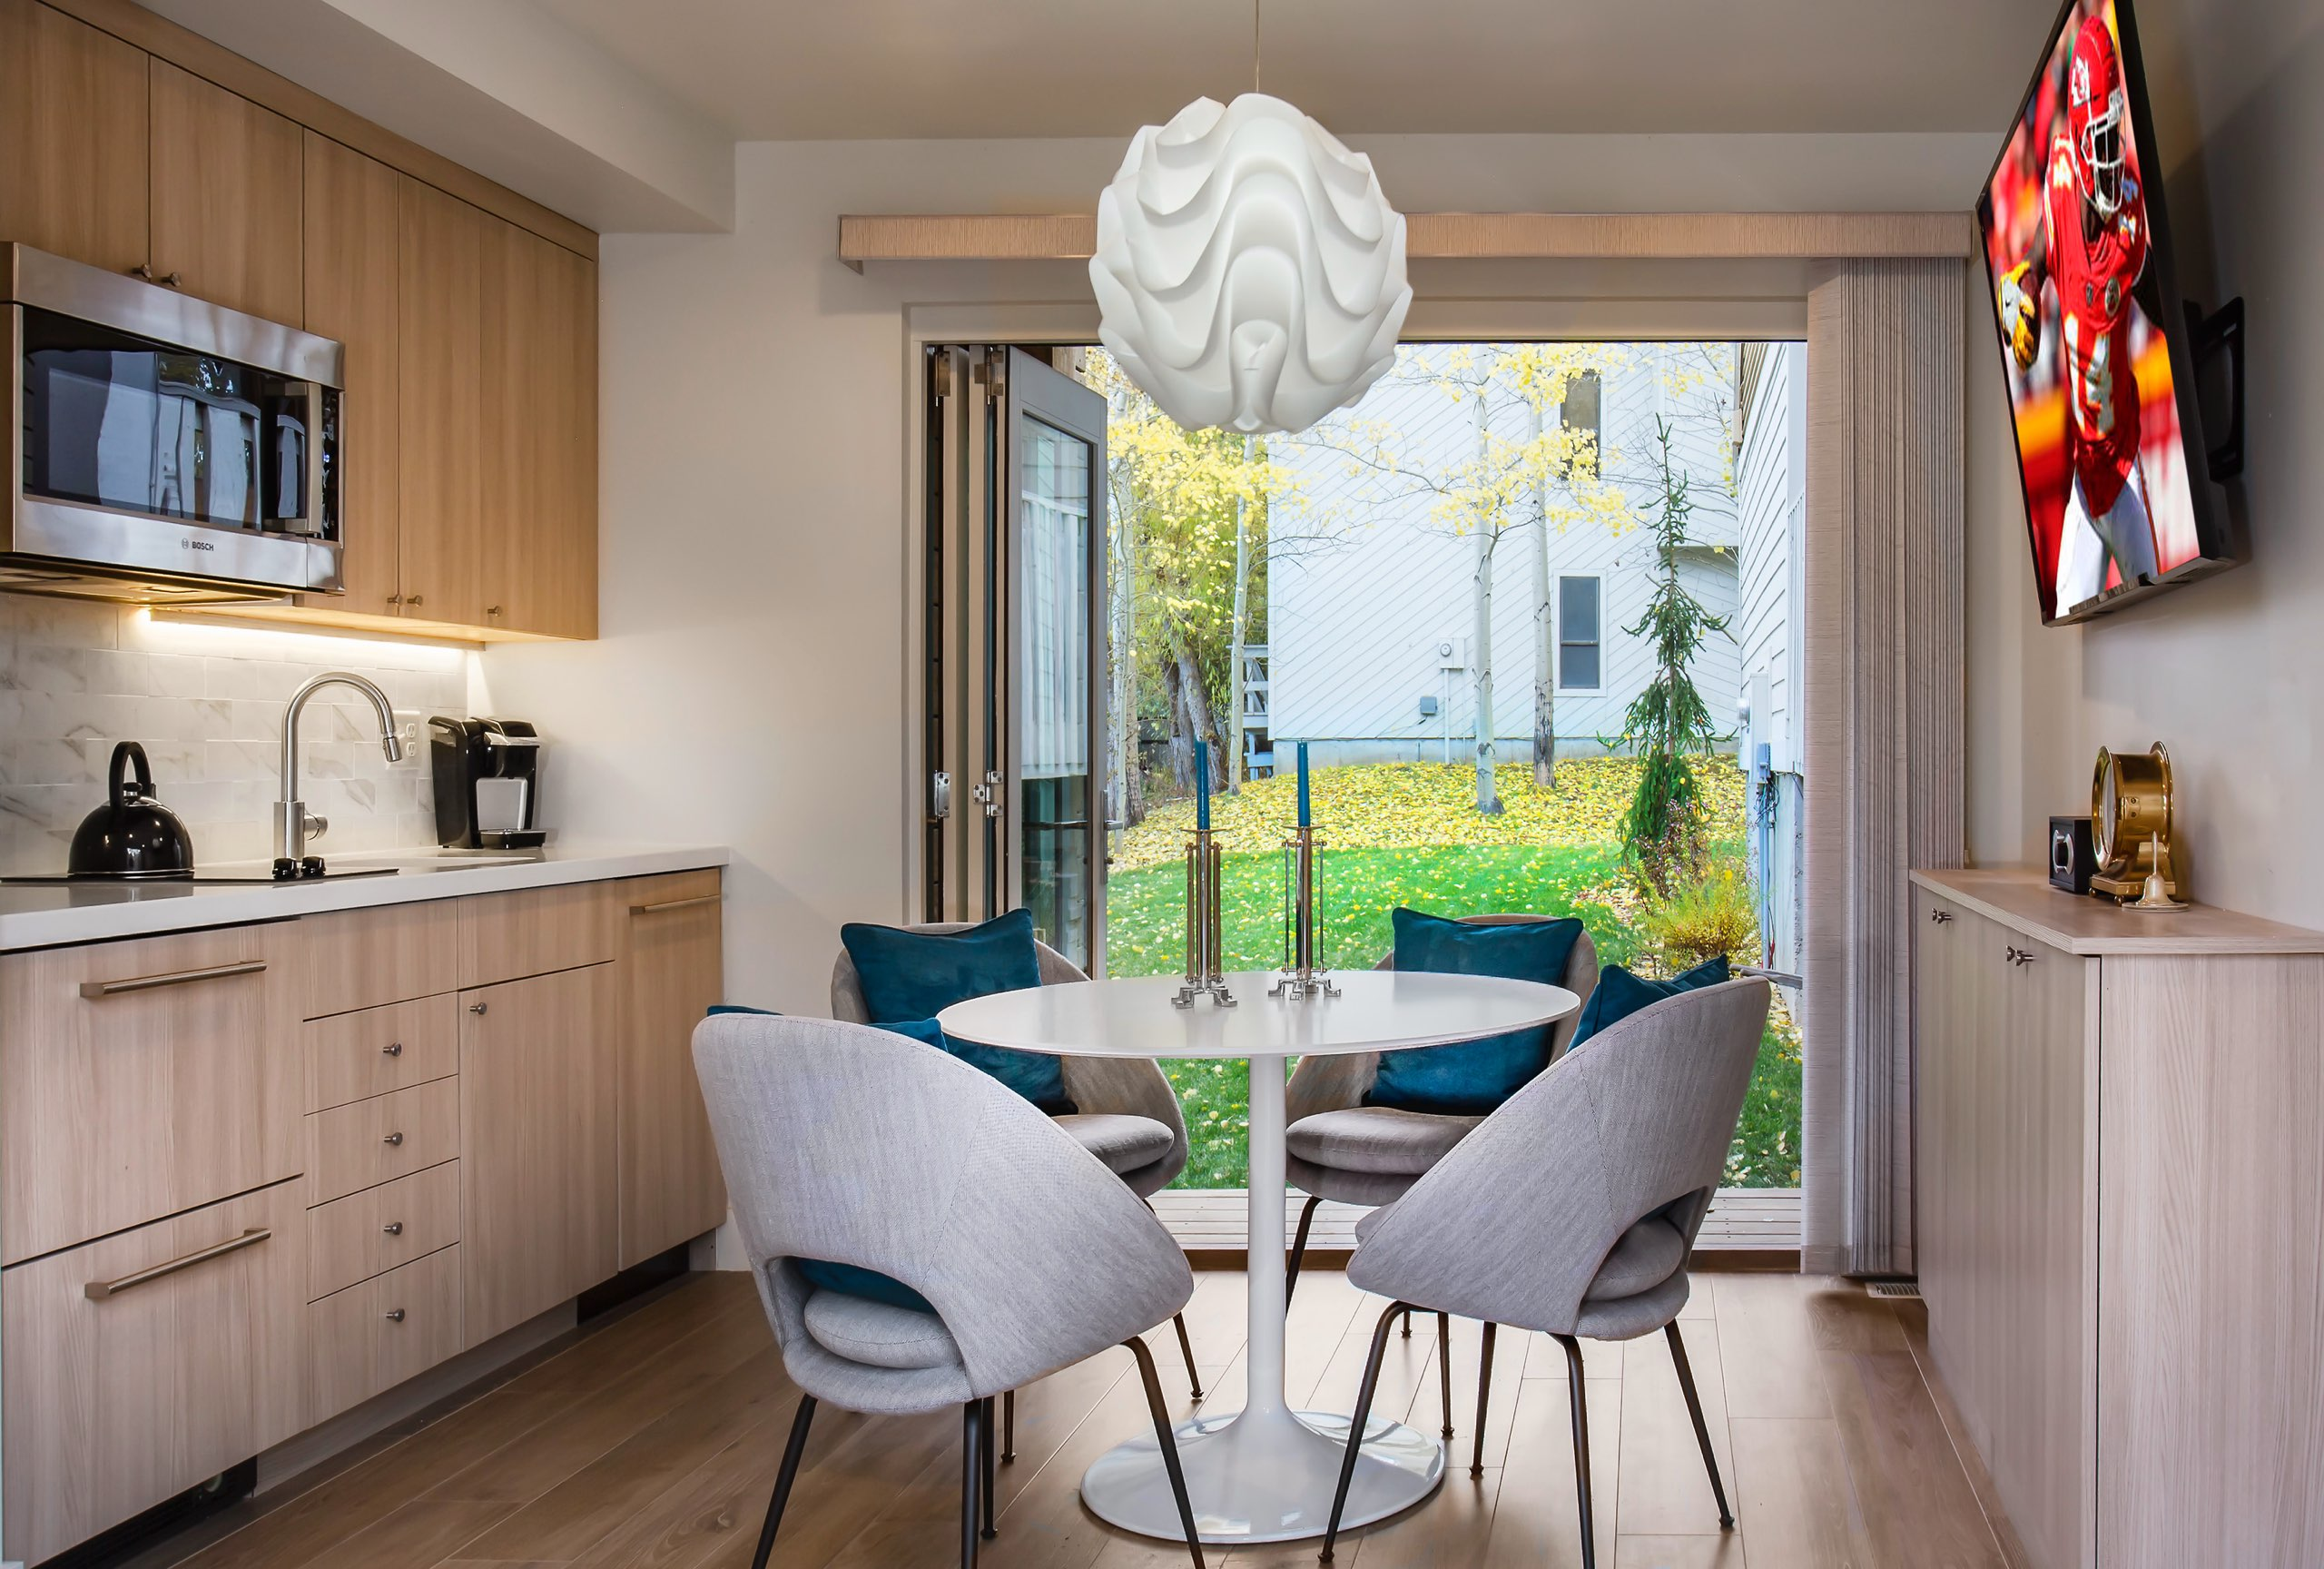 Kitchen and dining room in the Granny Pod in Park City, Utah, architectural design by Elliott Workgroup